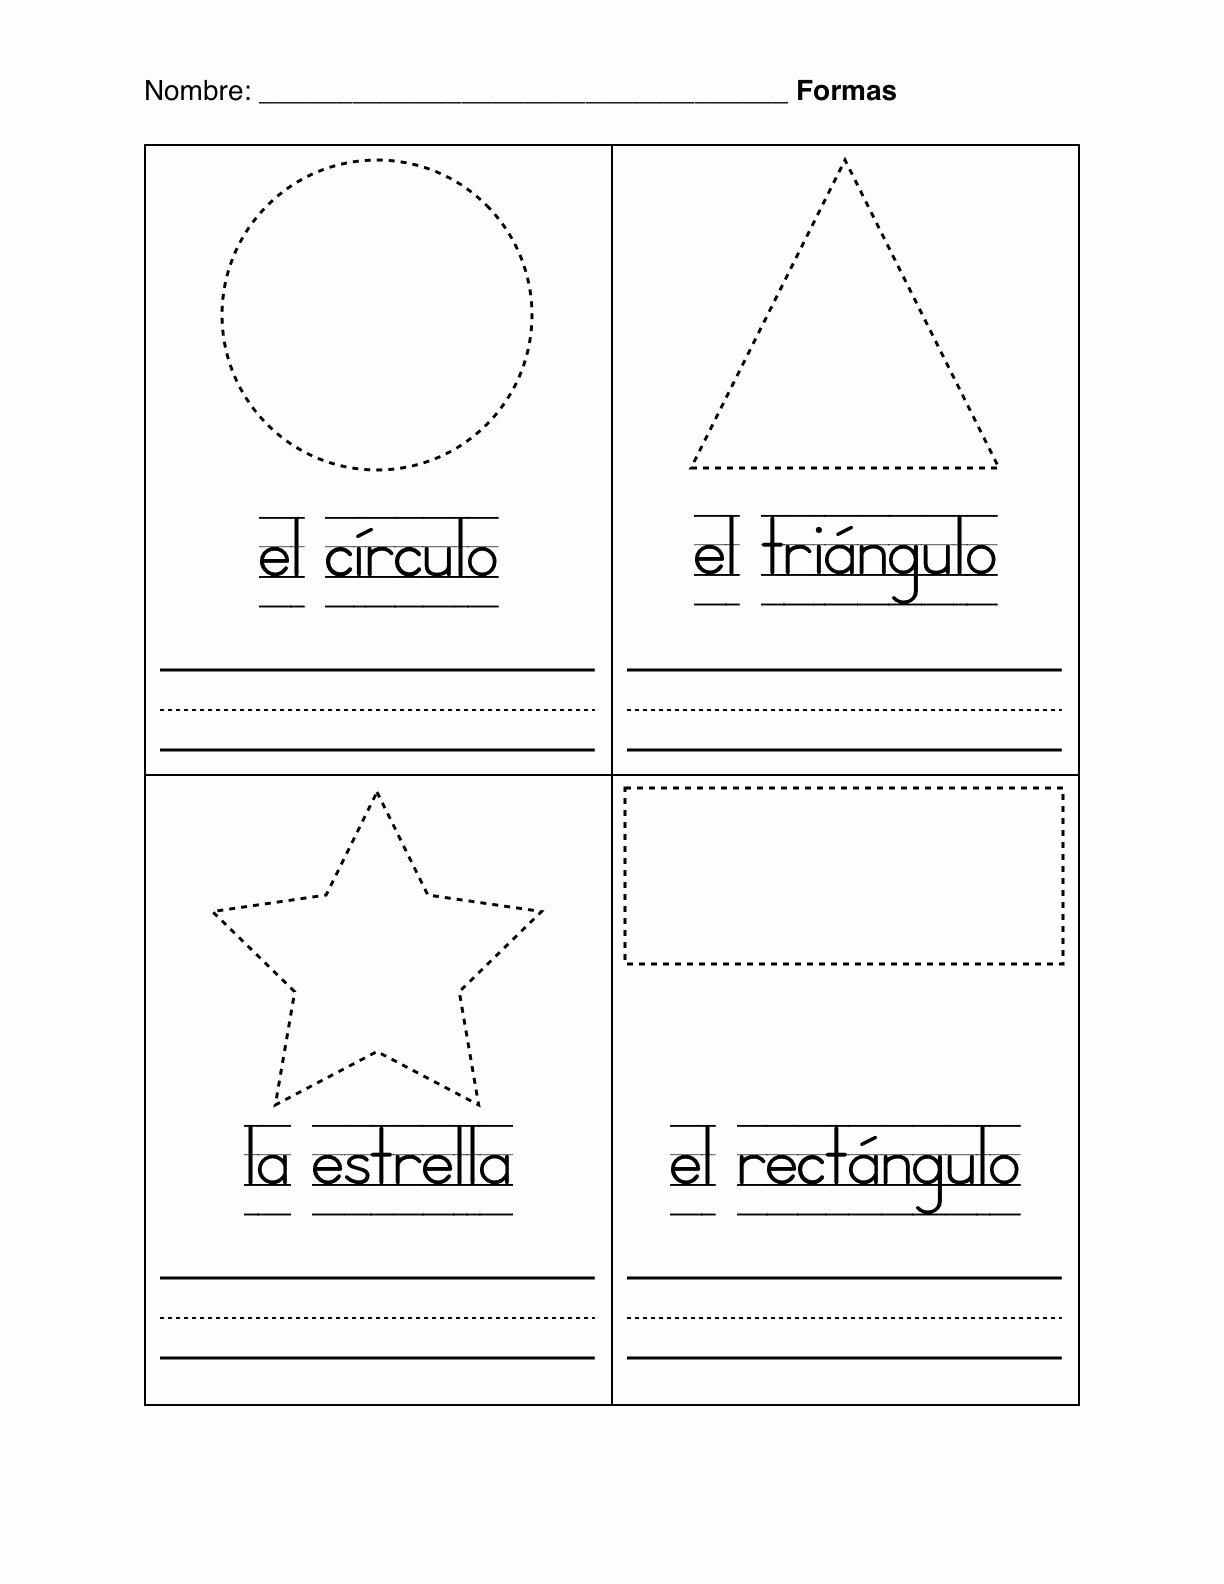 Spanish Worksheets for Preschoolers New Basic Shapes In Spanish formas Basicas Worksheet